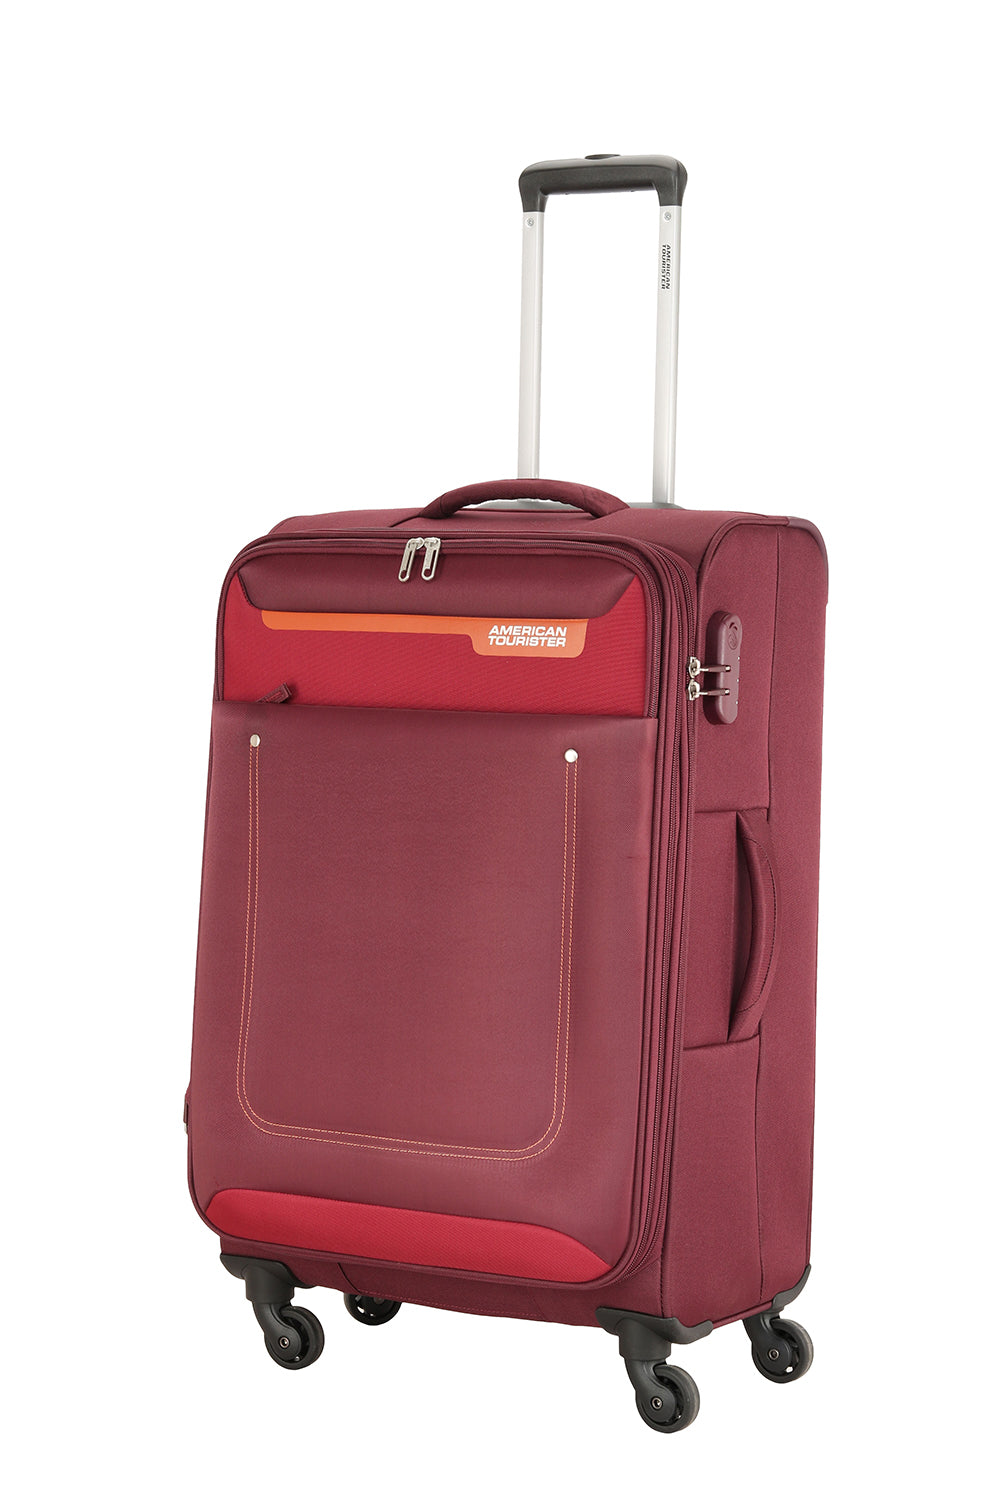 American Tourister Jackson Check-In-Luggage Trolly Bag